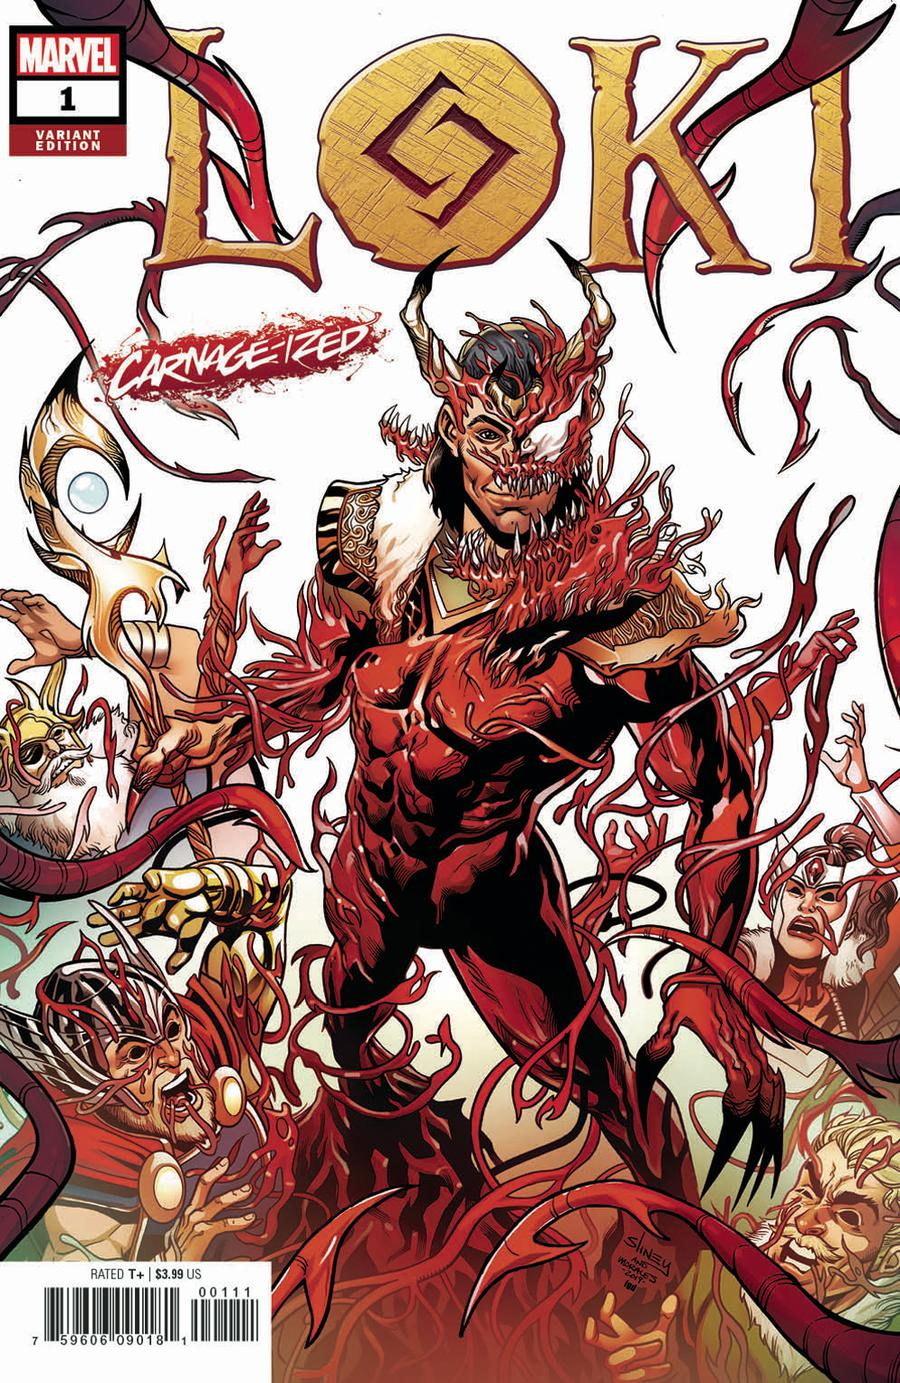 Loki Vol 3 #1 Cover B Variant Will Sliney Carnage-Ized Cover